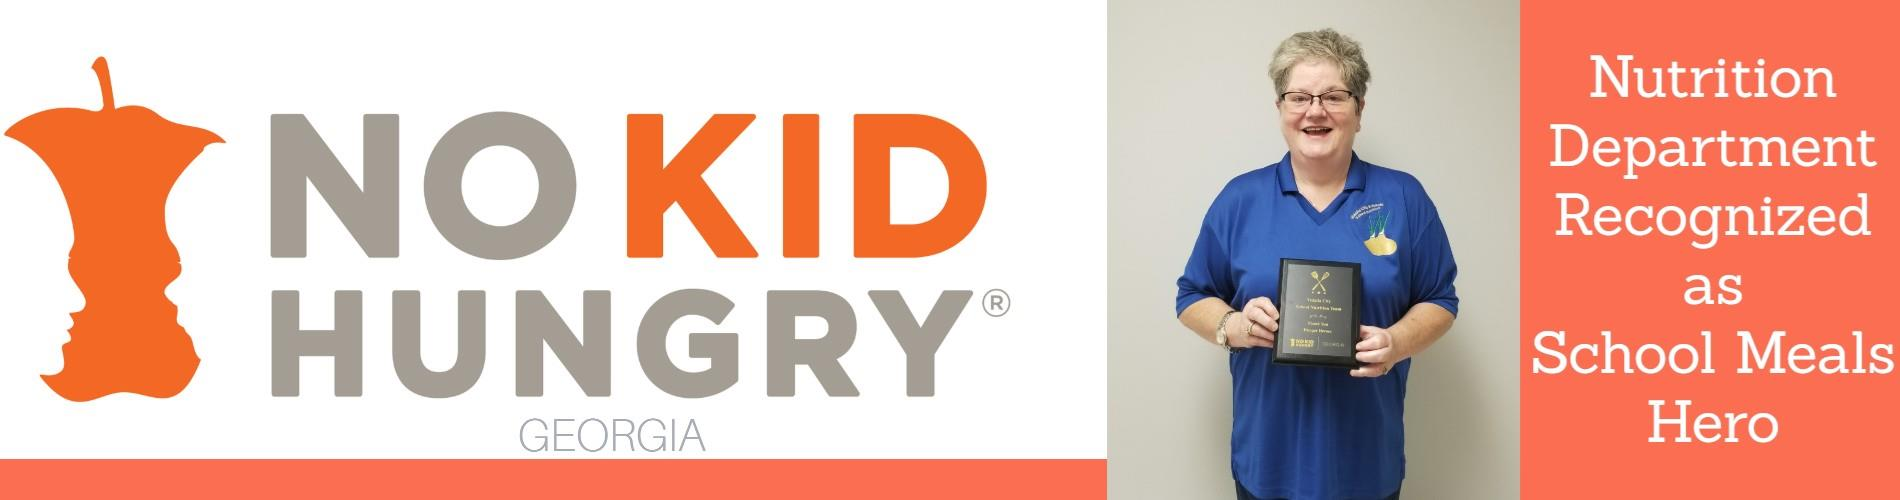 Denise Parson Holding No Kid Hungry Plaque